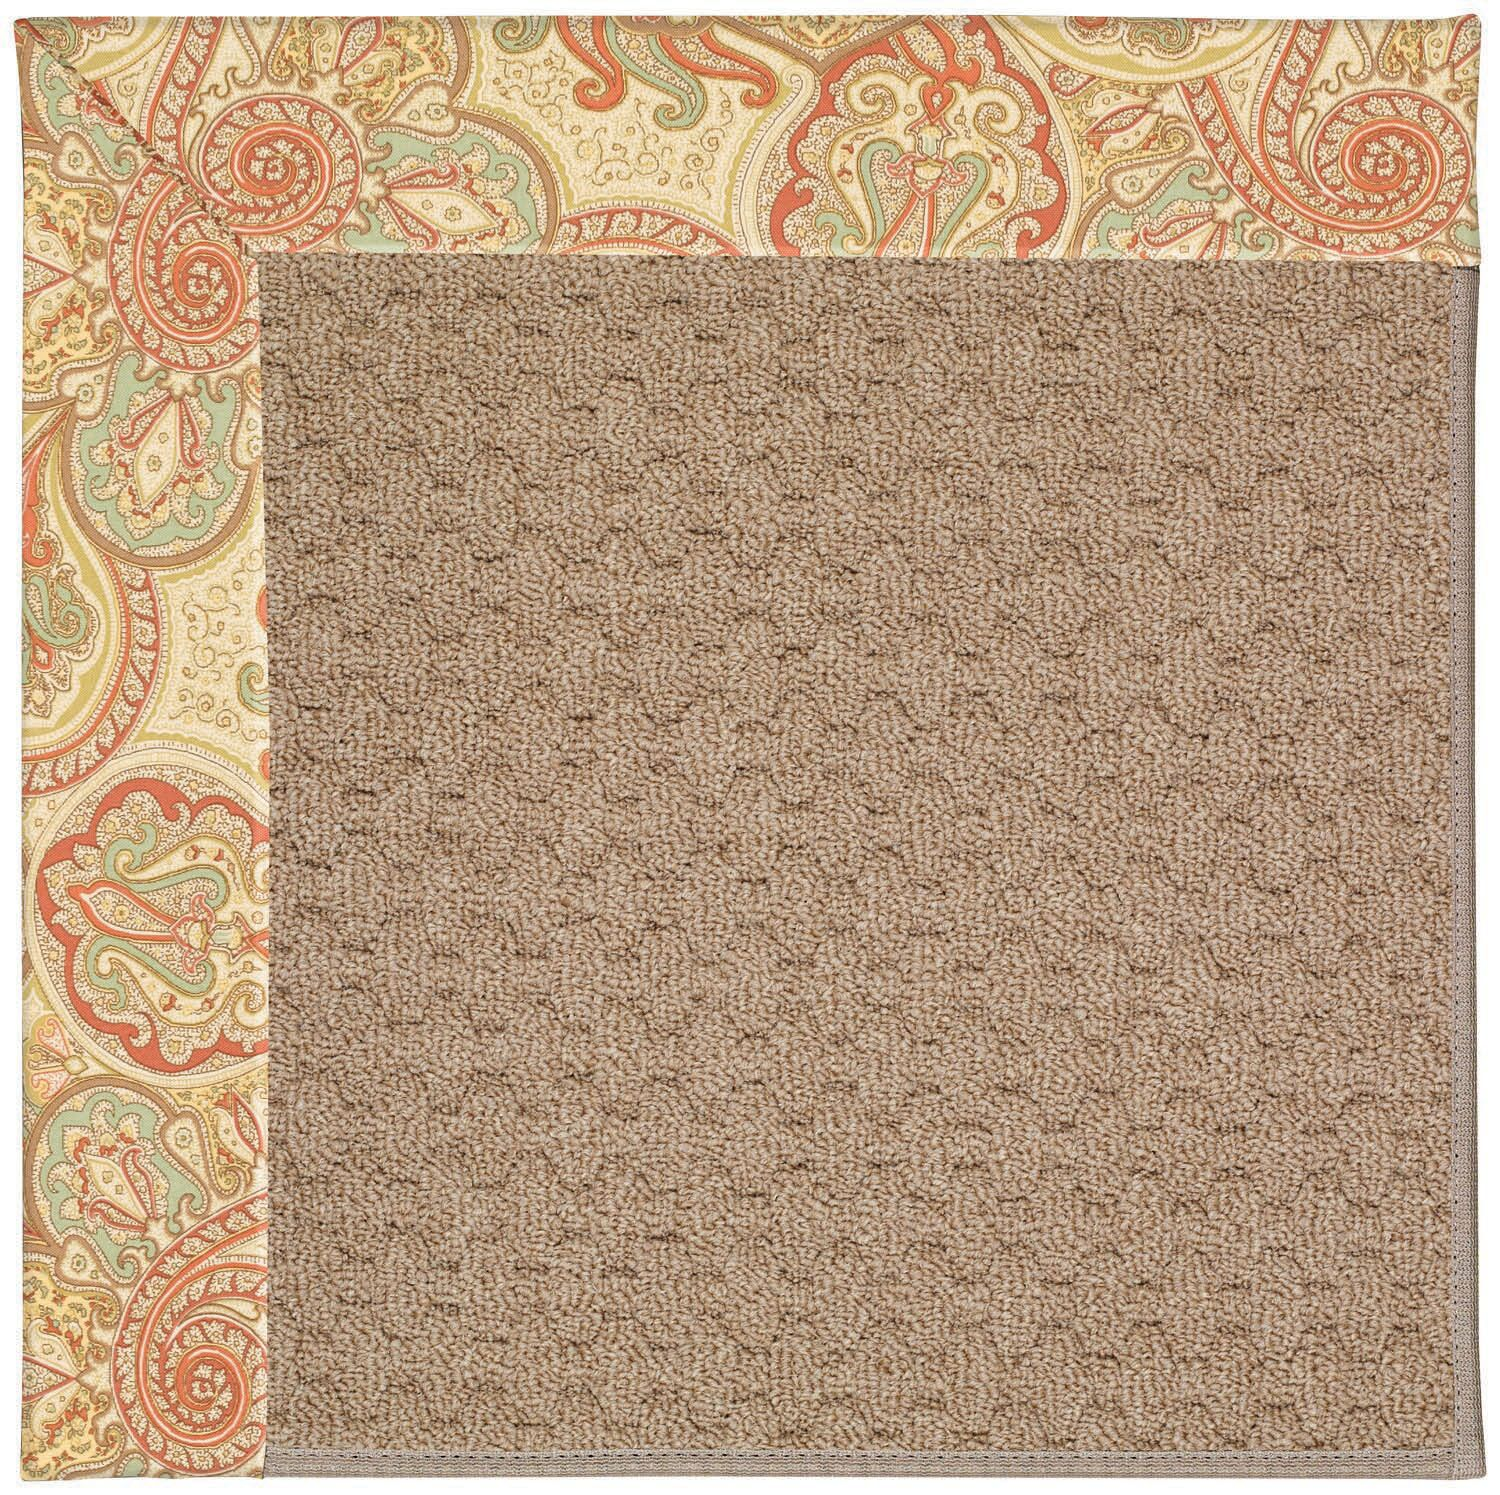 Lisle Machine Tufted Auburn/Brown Indoor/Outdoor Area Rug Rug Size: Rectangle 4' x 6'